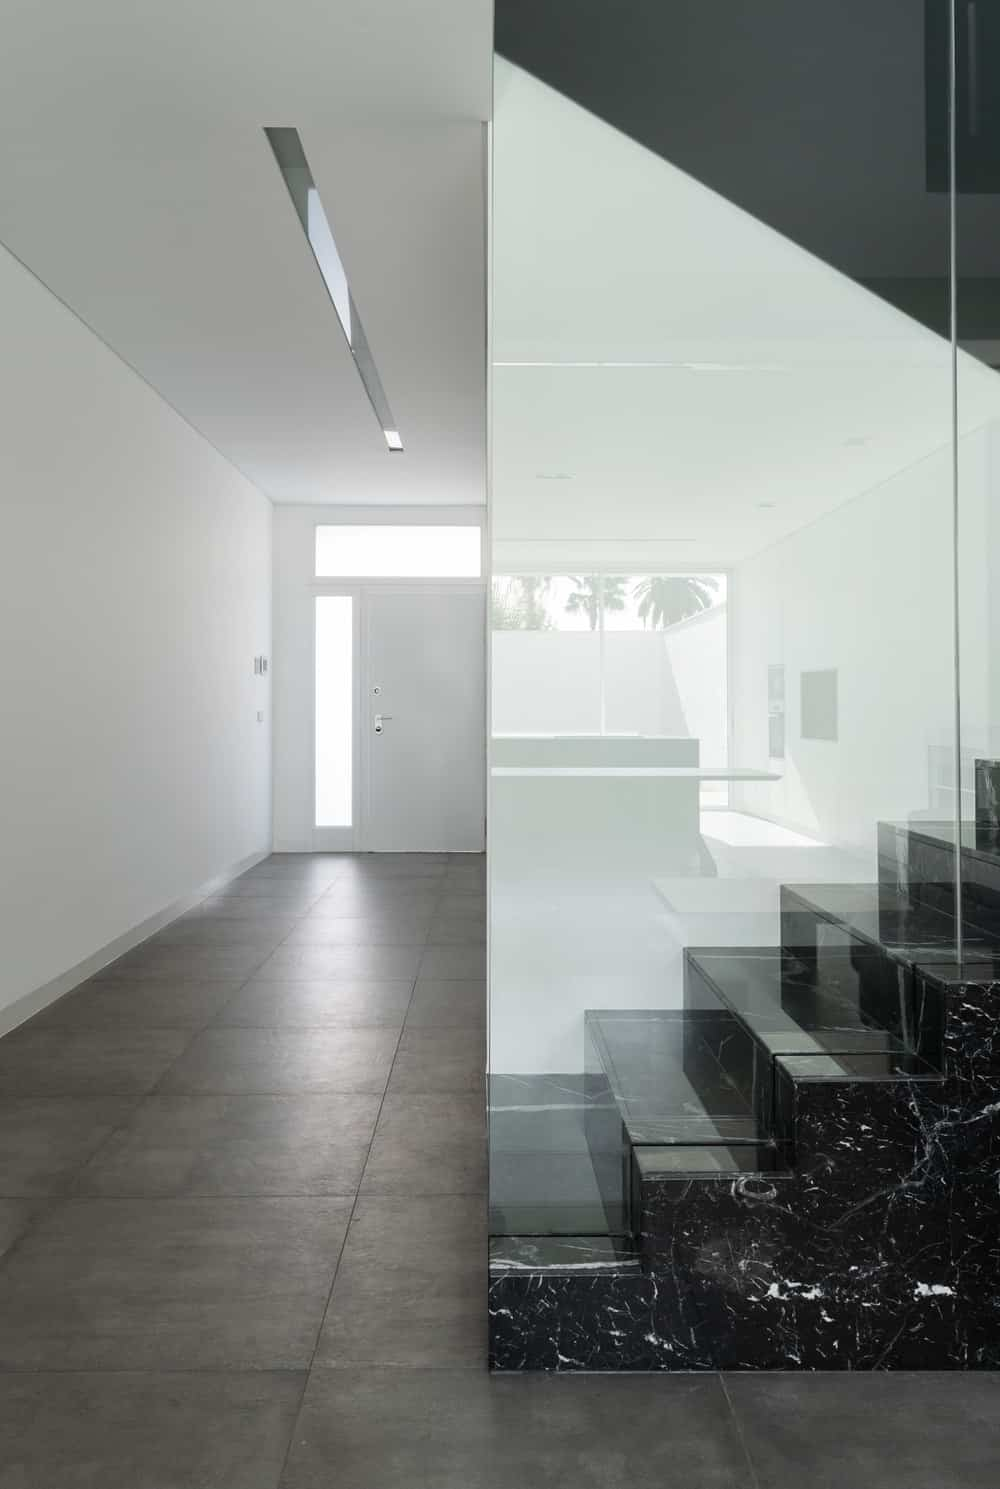 This is a simple minimalist foyer with a large white main door brightened by the side light and transom window leading to a hallway of white walls and gray flooring tiles.